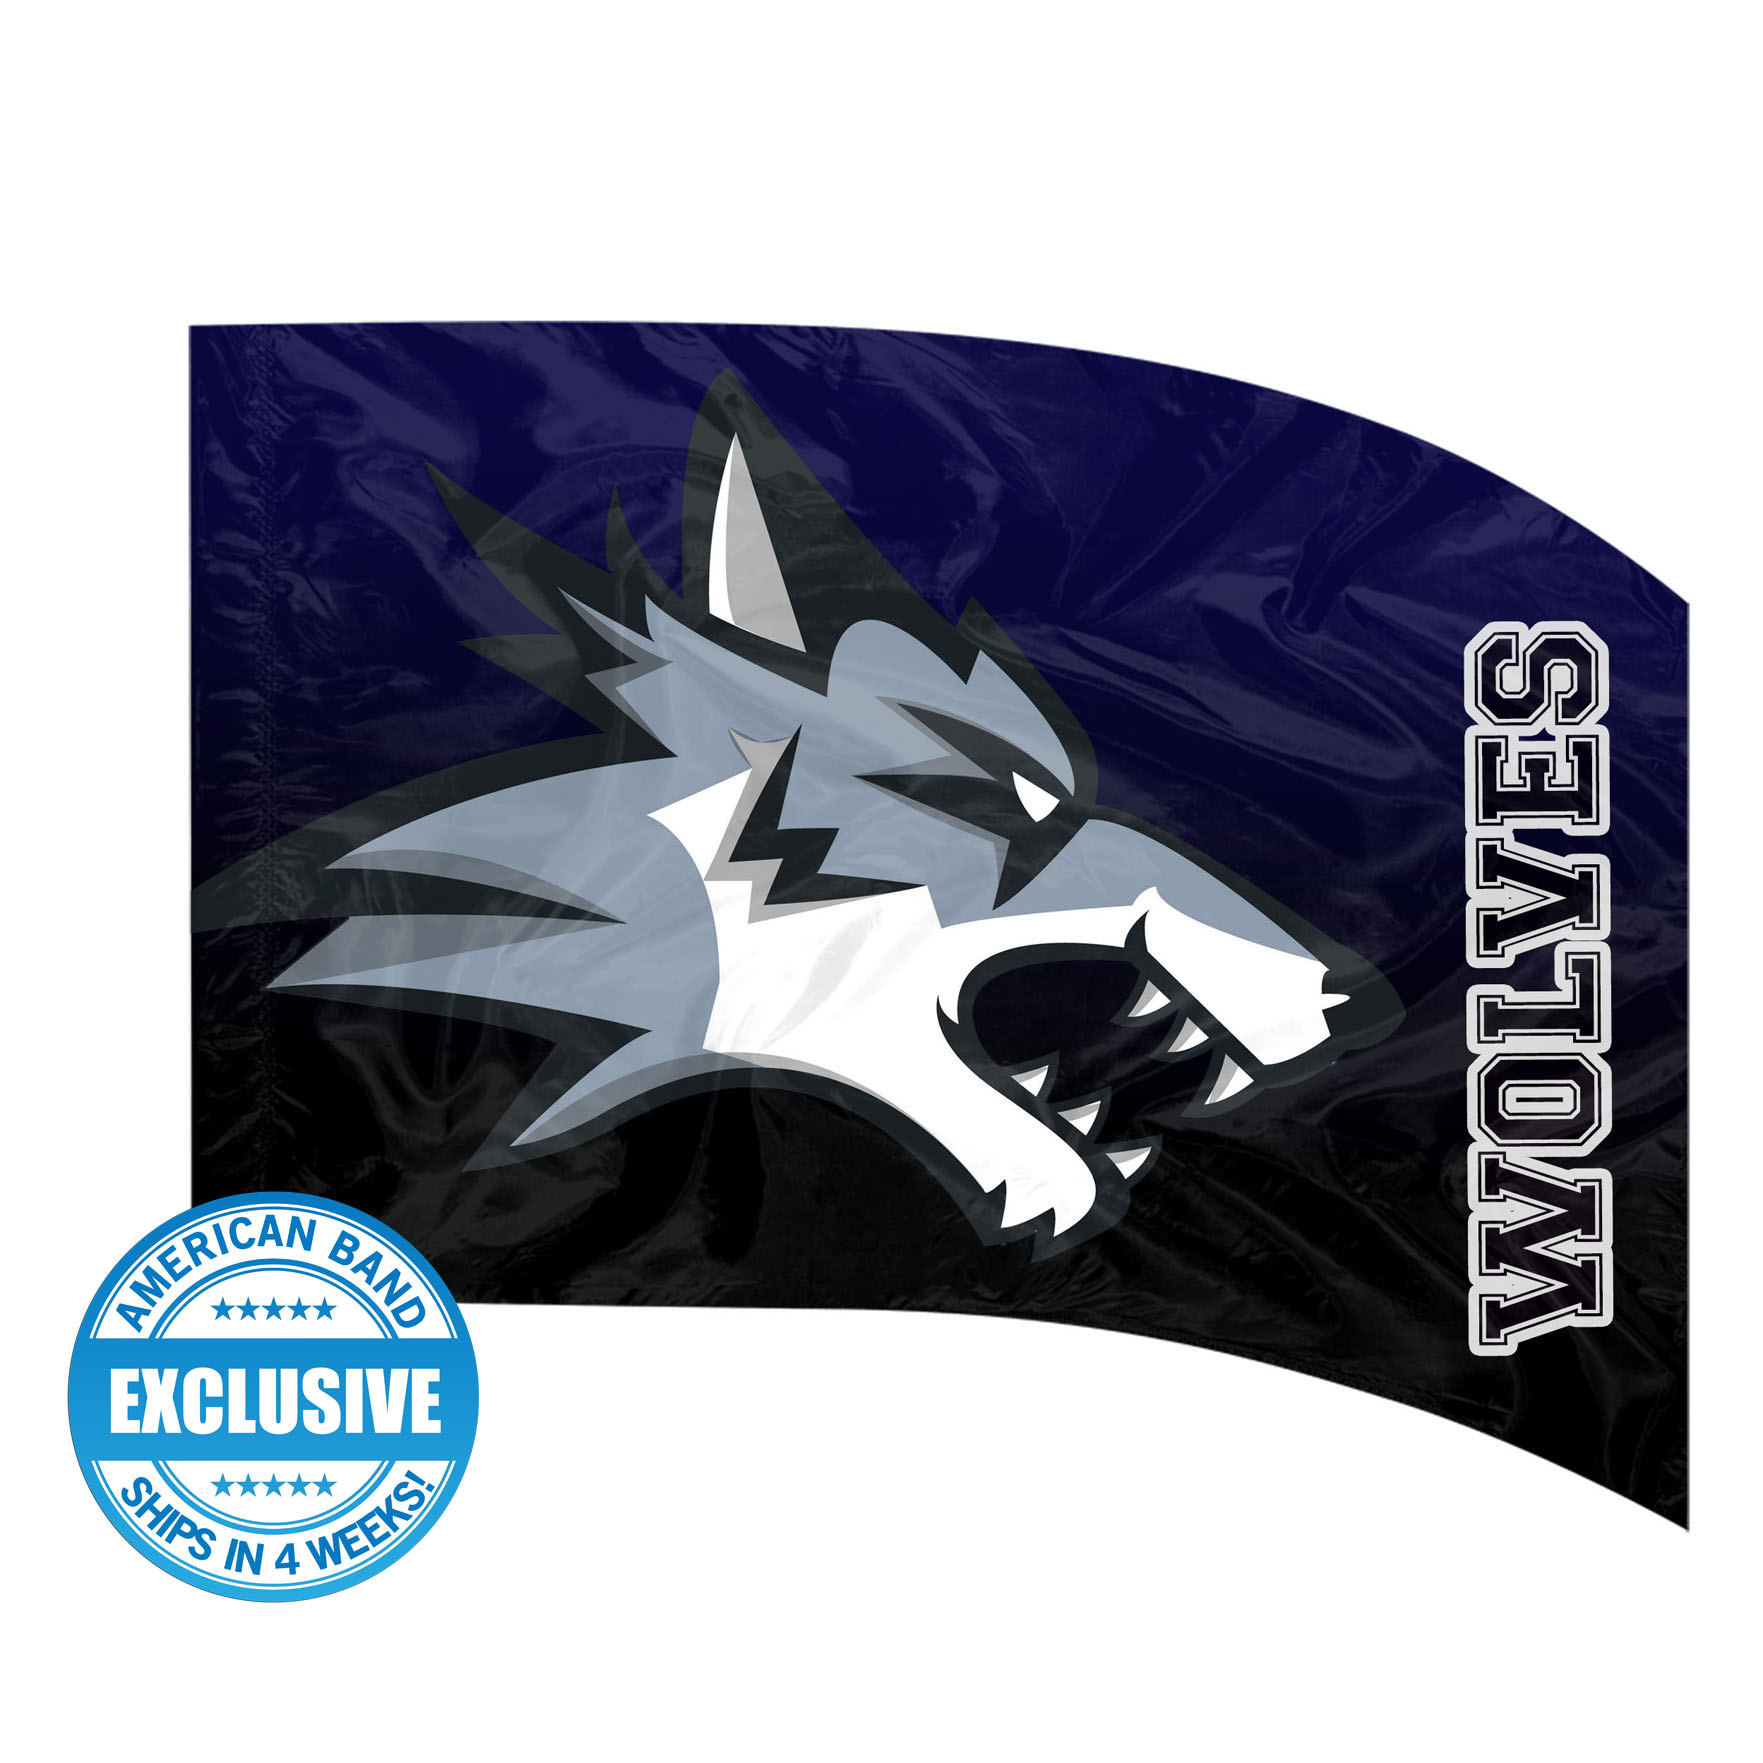 Made-to-Order Digital Mascot Flags - Wolves